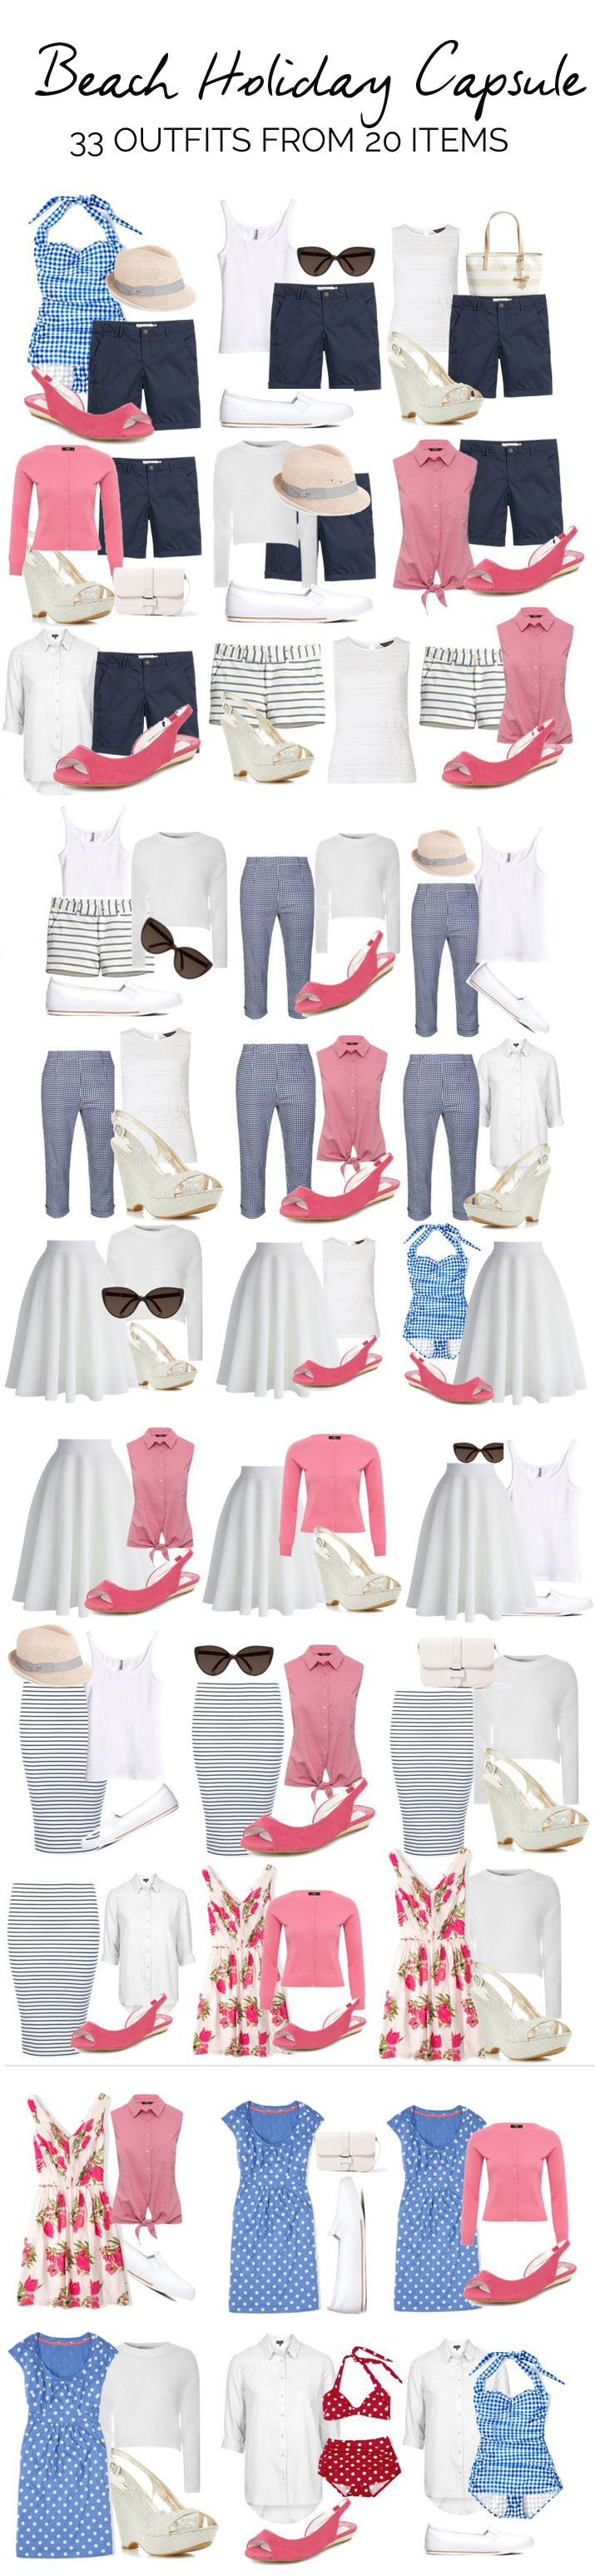 Travel Wardrobe  Capsule Wardrobe Wardrobes And Vacation